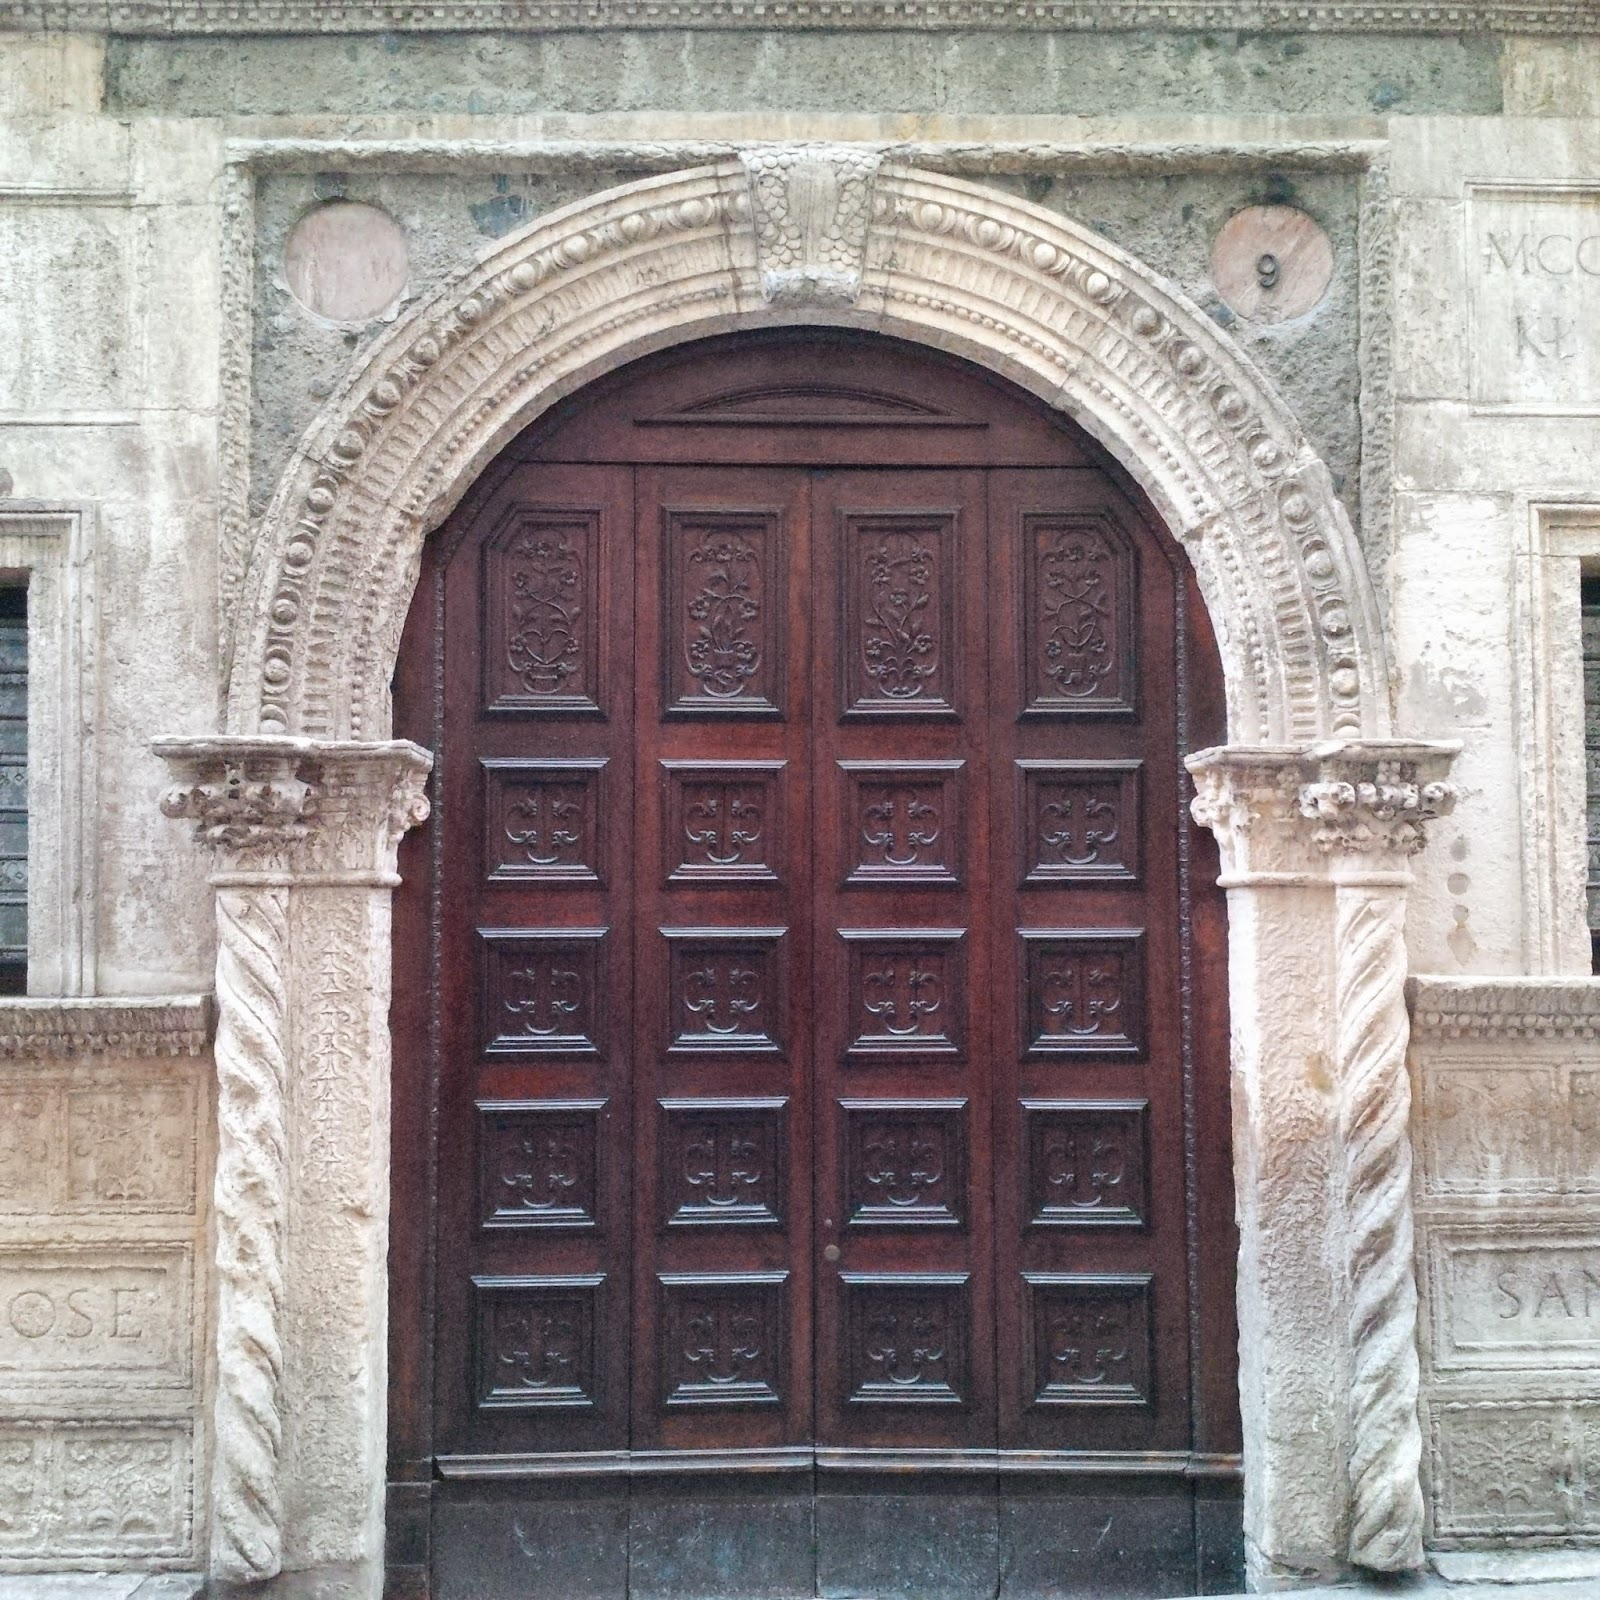 The door of Antonio Pigafetta's house